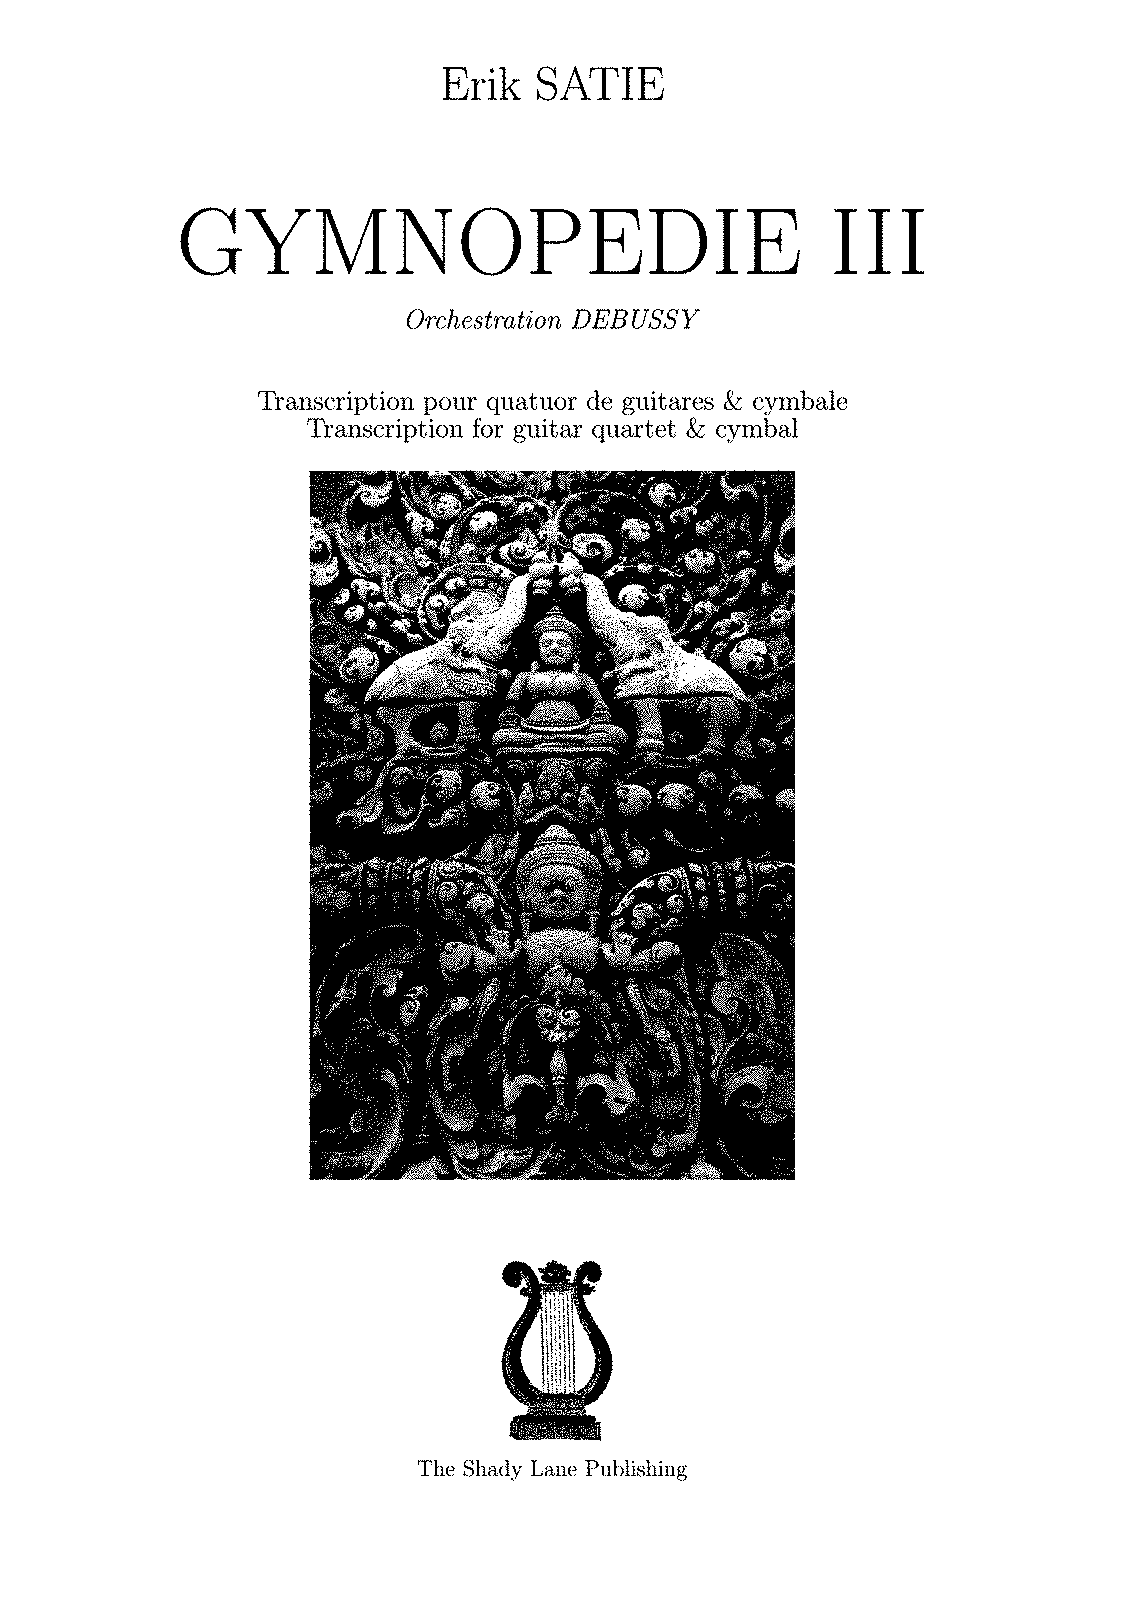 PMLP04215-SATIE-gymnopedie 1-guitar trancription.pdf